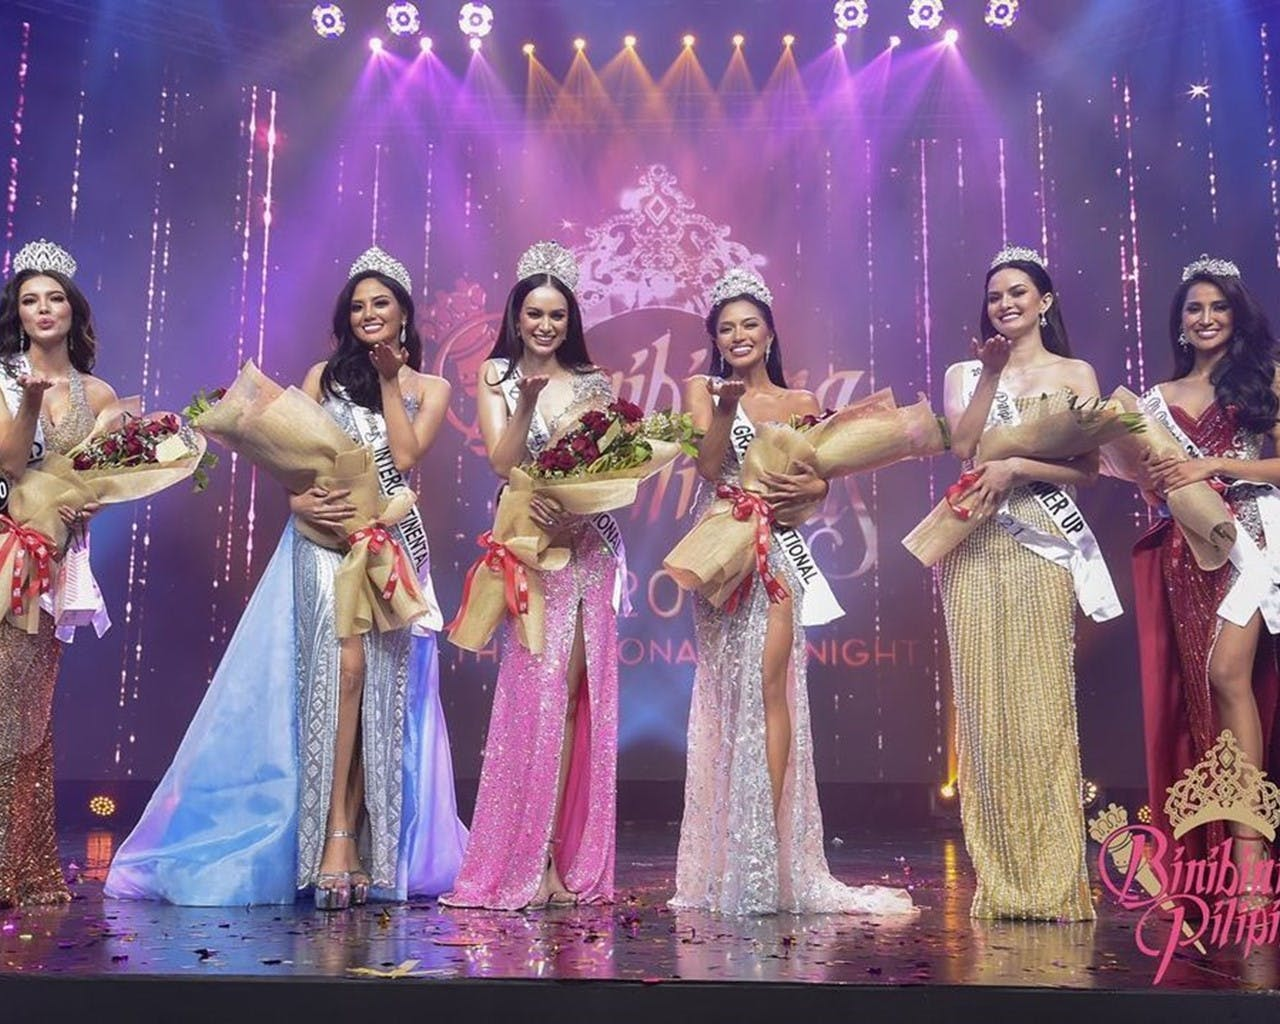 Why There Was No Miss Universe Title In The 2021 Bb. Pilipinas Coronation Night, In Case You Were Wondering